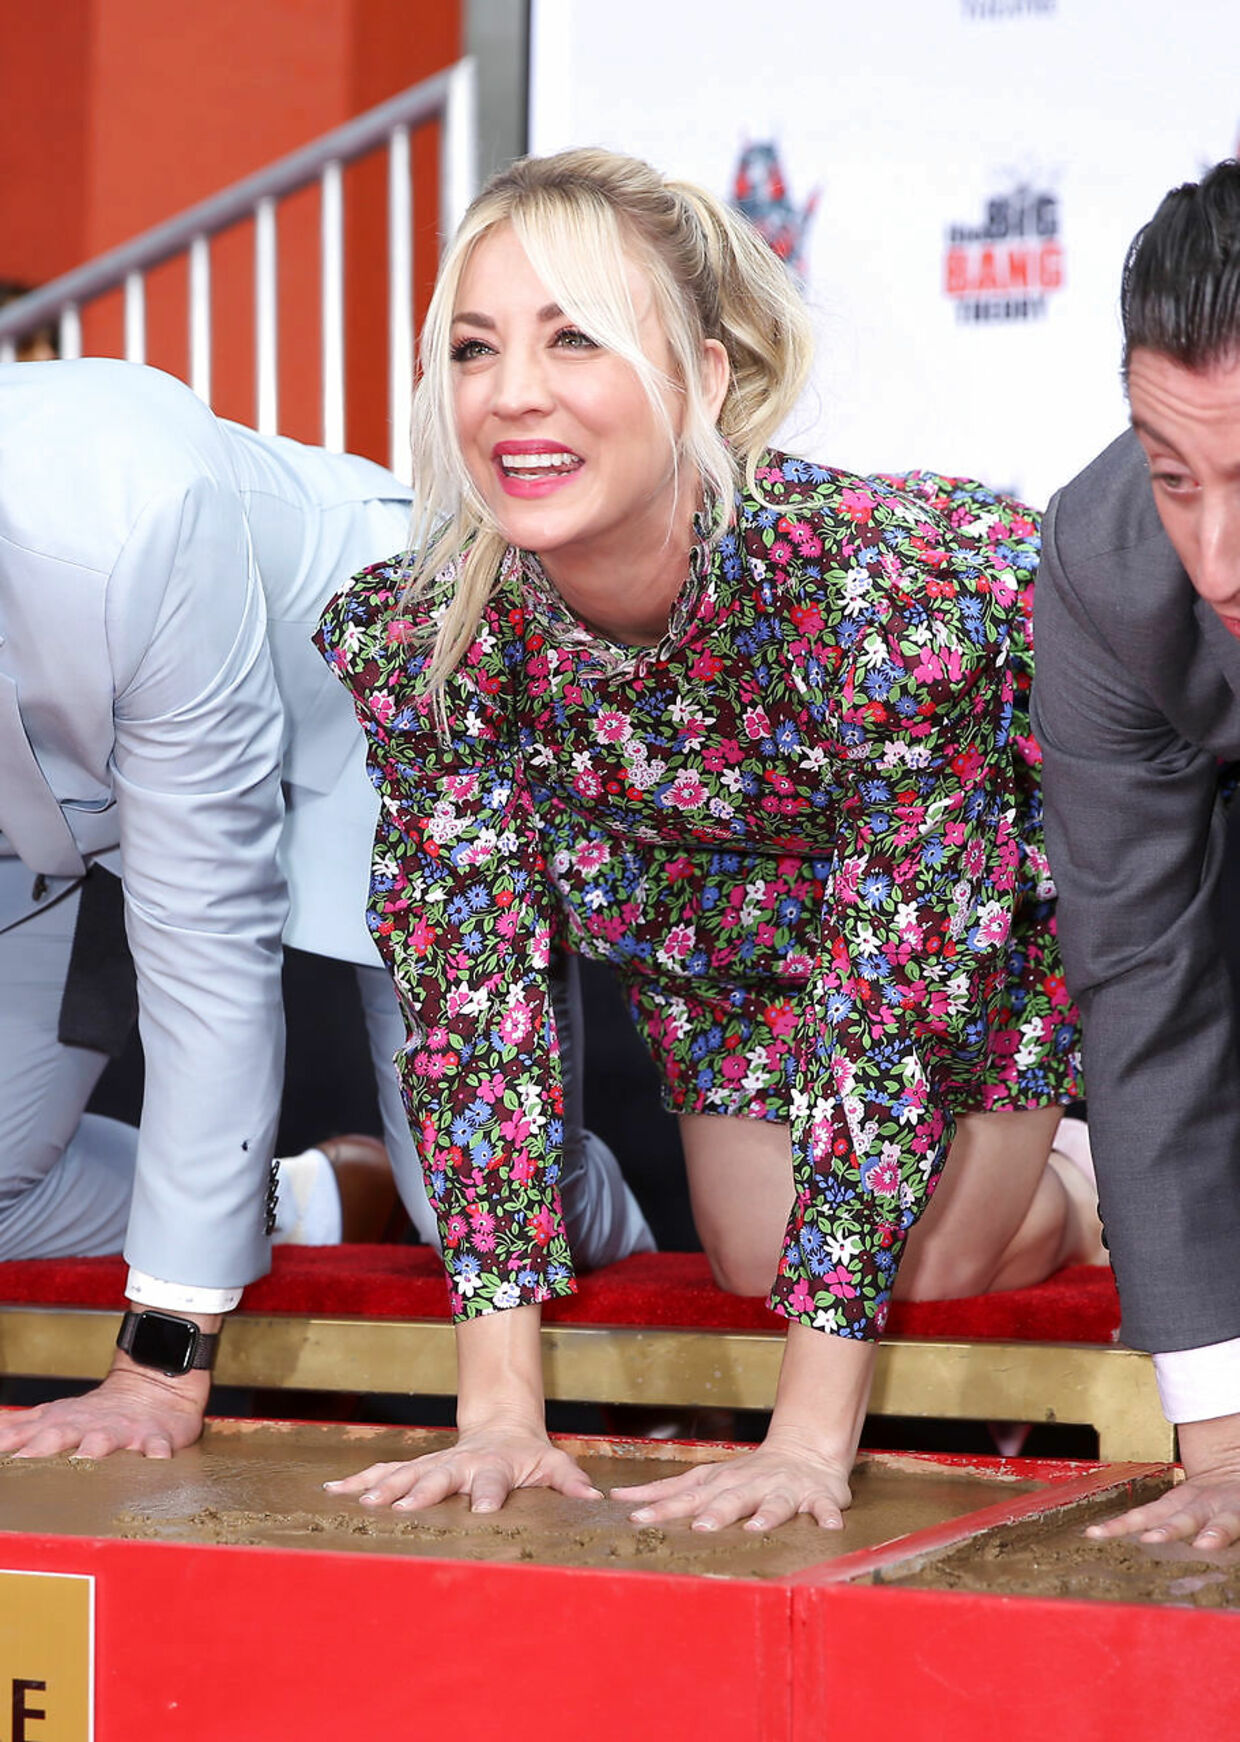 """Actor Kaley Cuoco participates in the cement handprints ceremony for the cast of the television comedy """"The Big Bang Theory"""" at the TCL Chinese Theatre IMAX in Hollywood, Los Angeles, California, U.S., May 1, 2019. REUTERS/Danny Moloshok"""